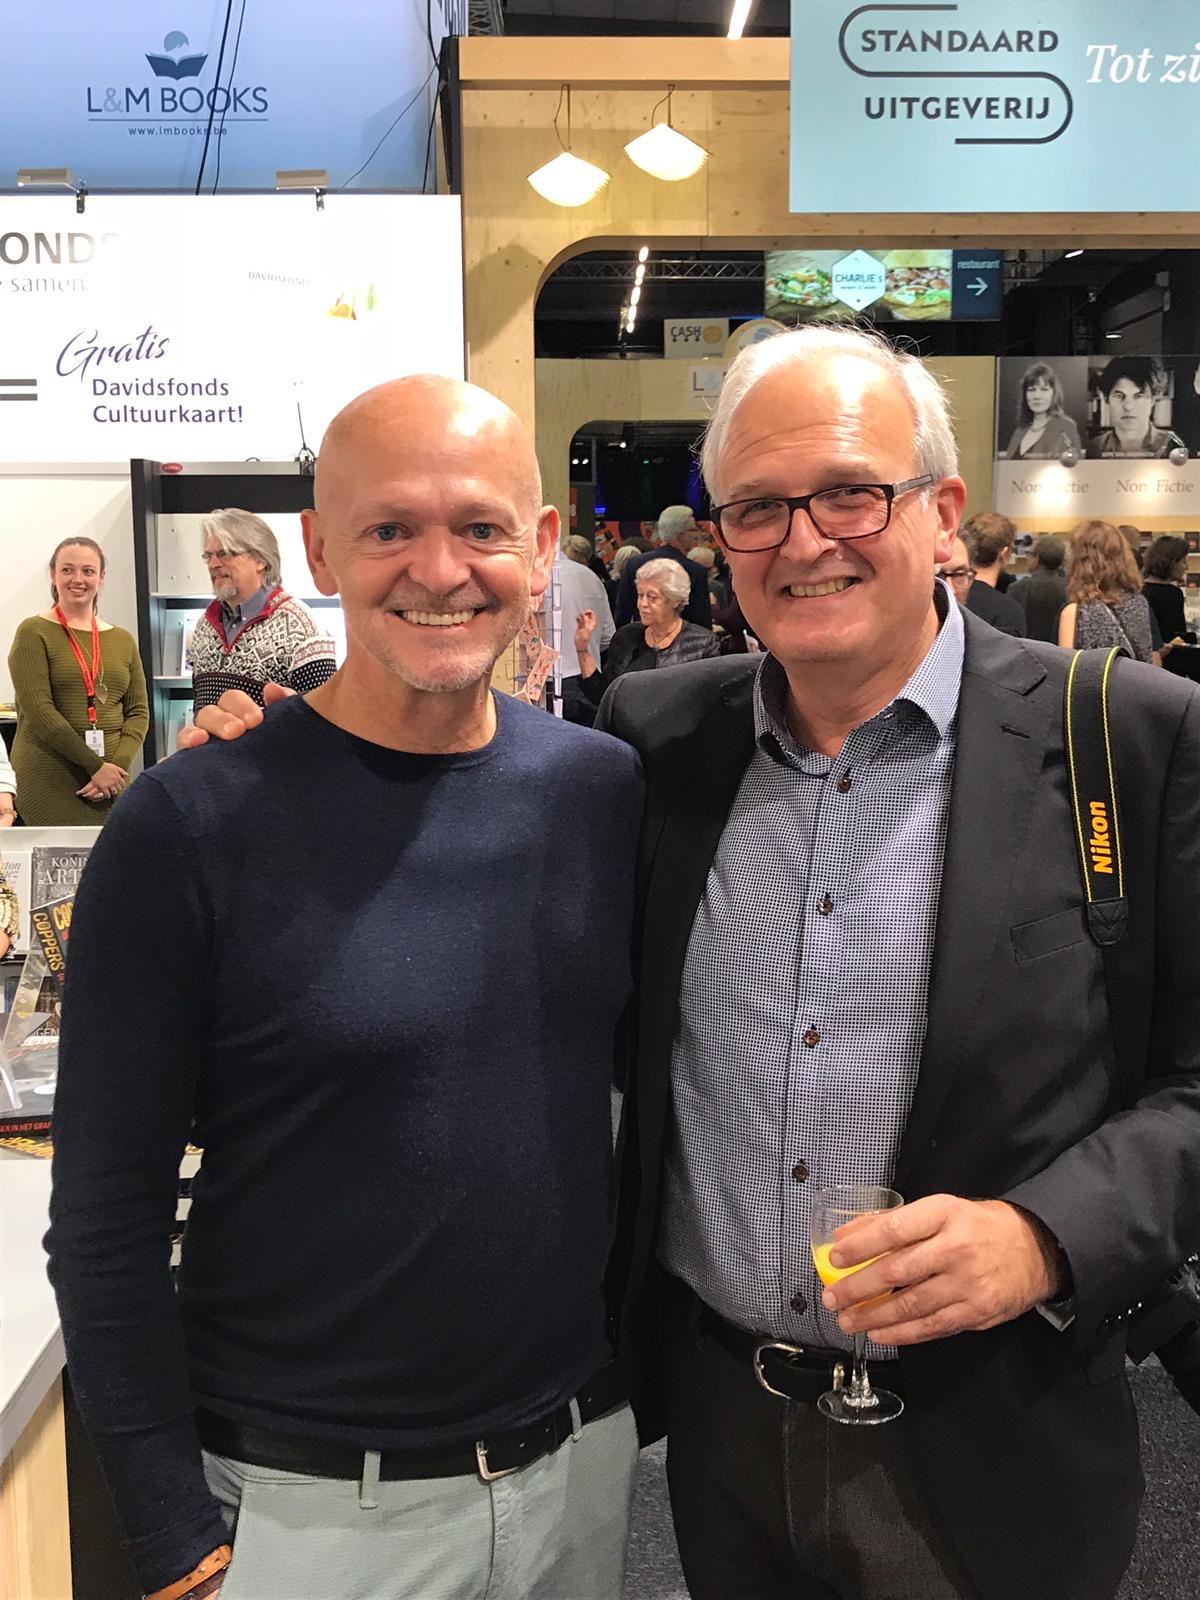 Antwerp Book Fair with fellow crime writer Toni Coppers.